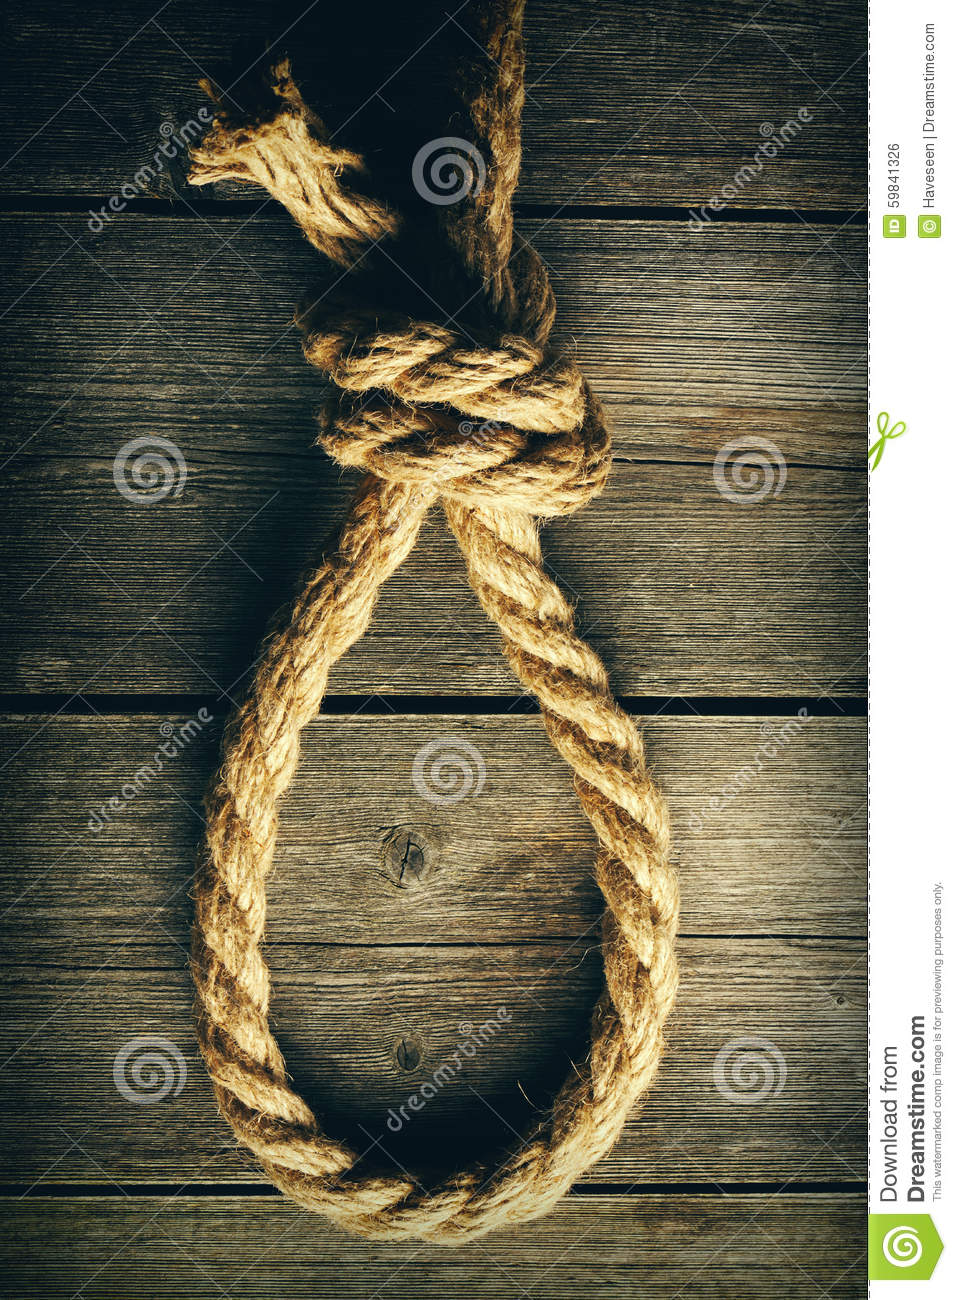 Rope Noose With Knot Stock Photo Image Of Pattern Brown 59841326